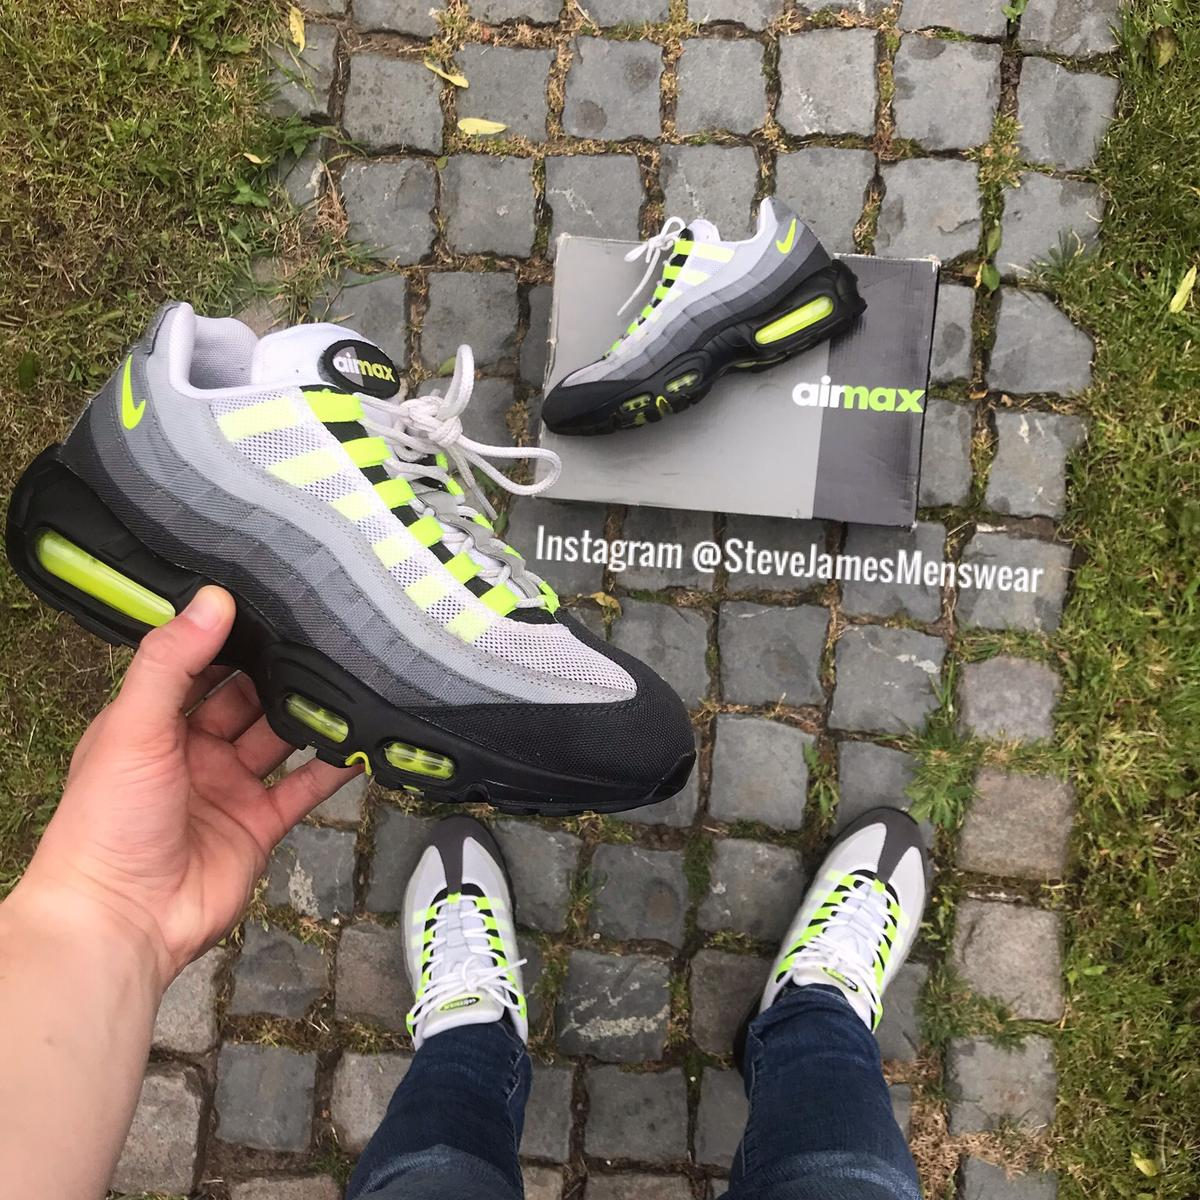 get cheap 56448 5b847 Nike Air Max 95 - OG Neon - Patch - UK 7.5 in L3 Liverpool ...